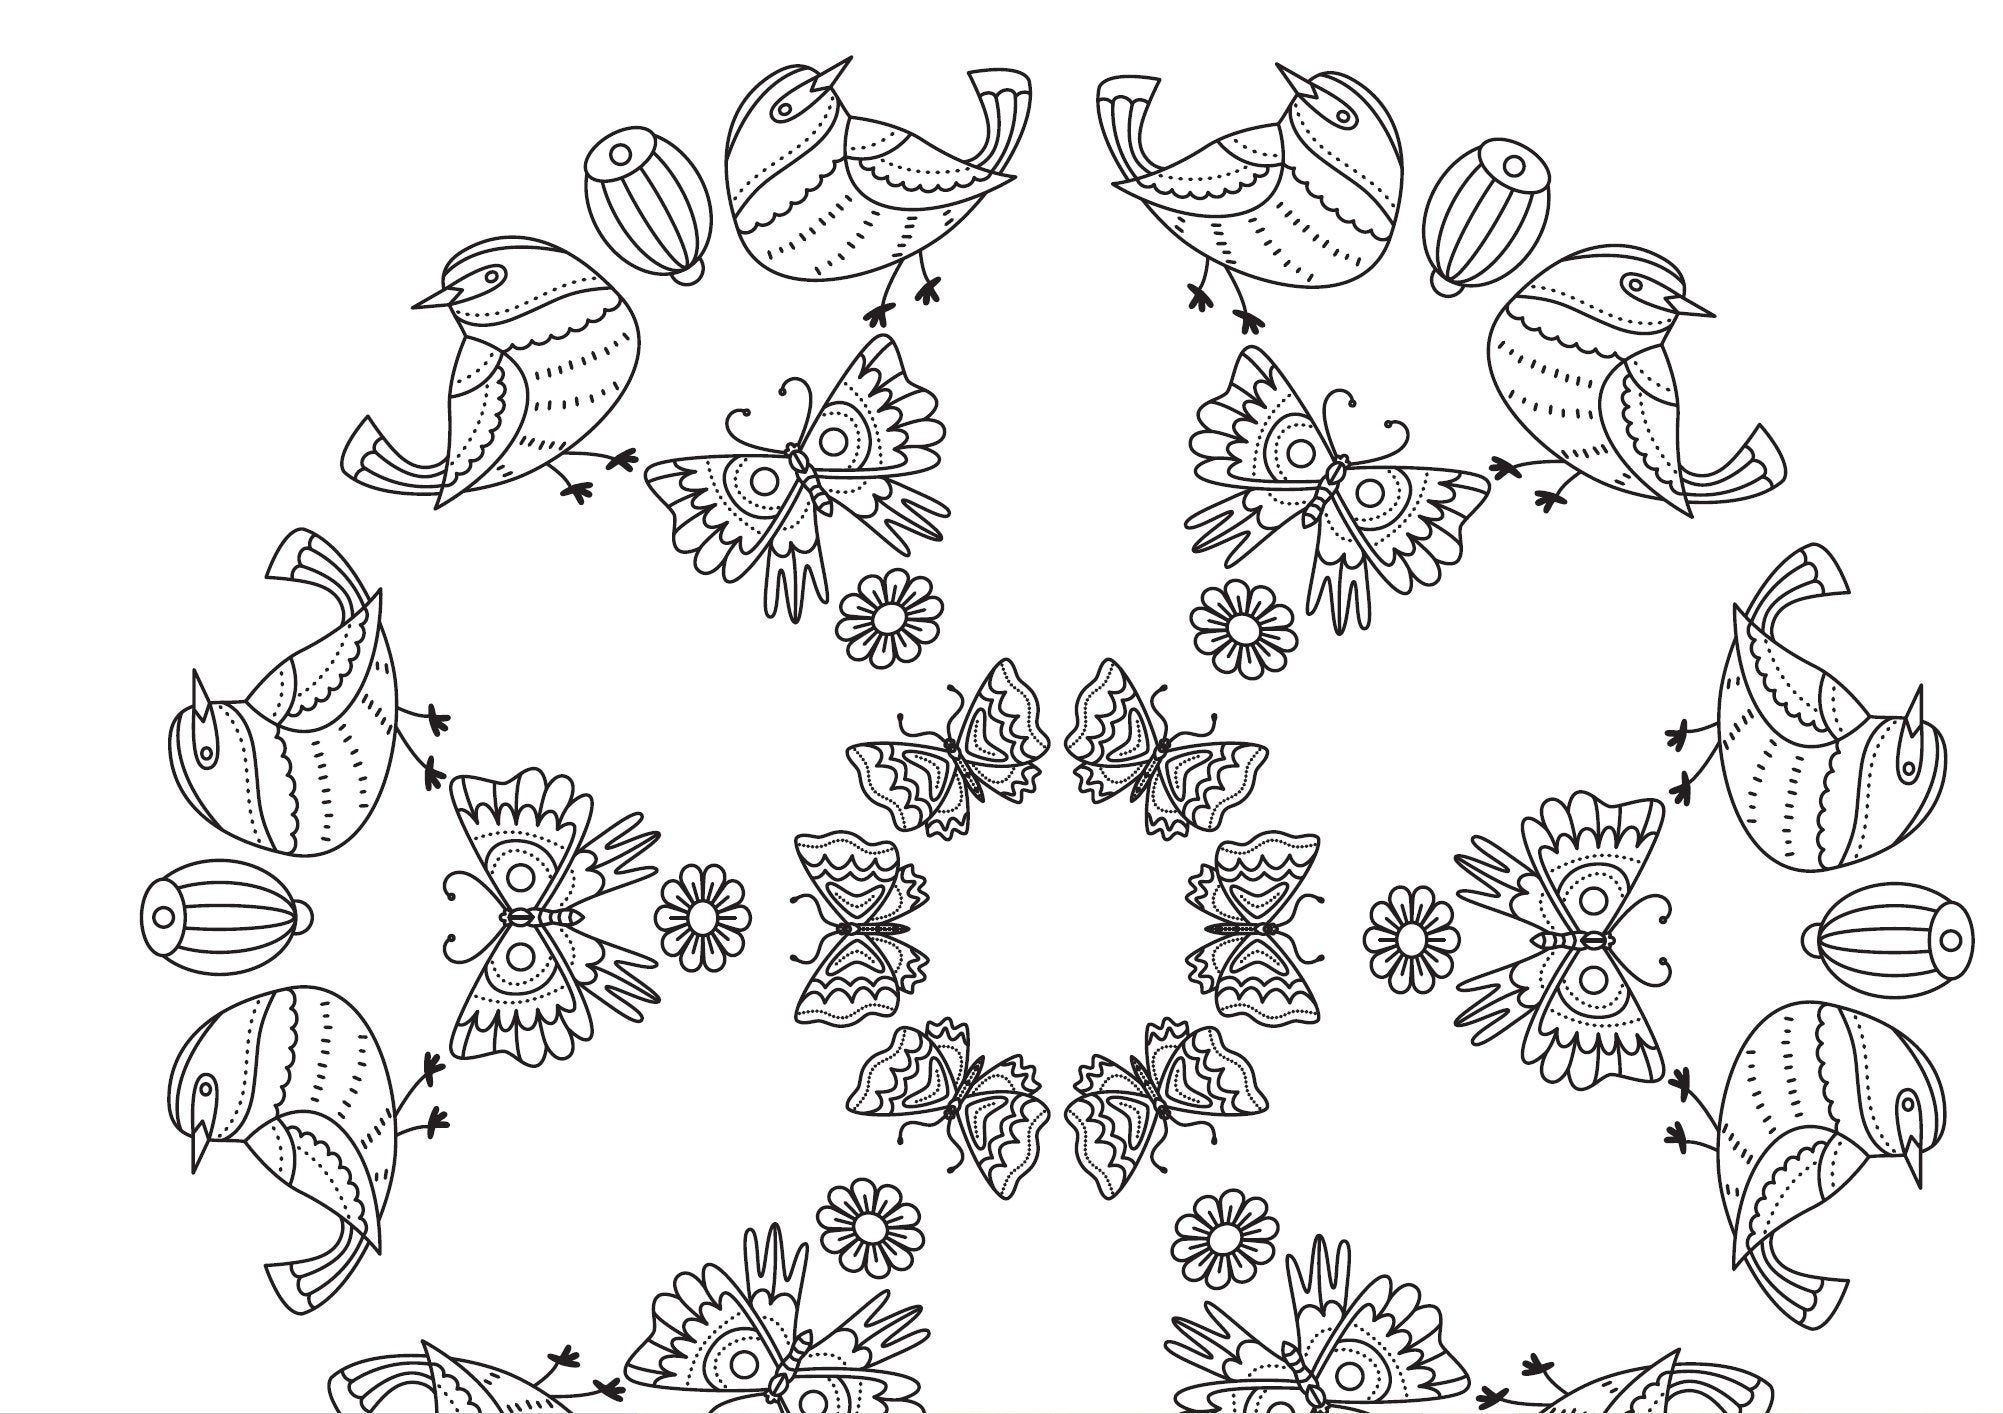 Birds And Butterflies Coloring Page Digital Download For Etsy In 2020 Butterfly Coloring Page Coloring Pages Colorful Butterflies